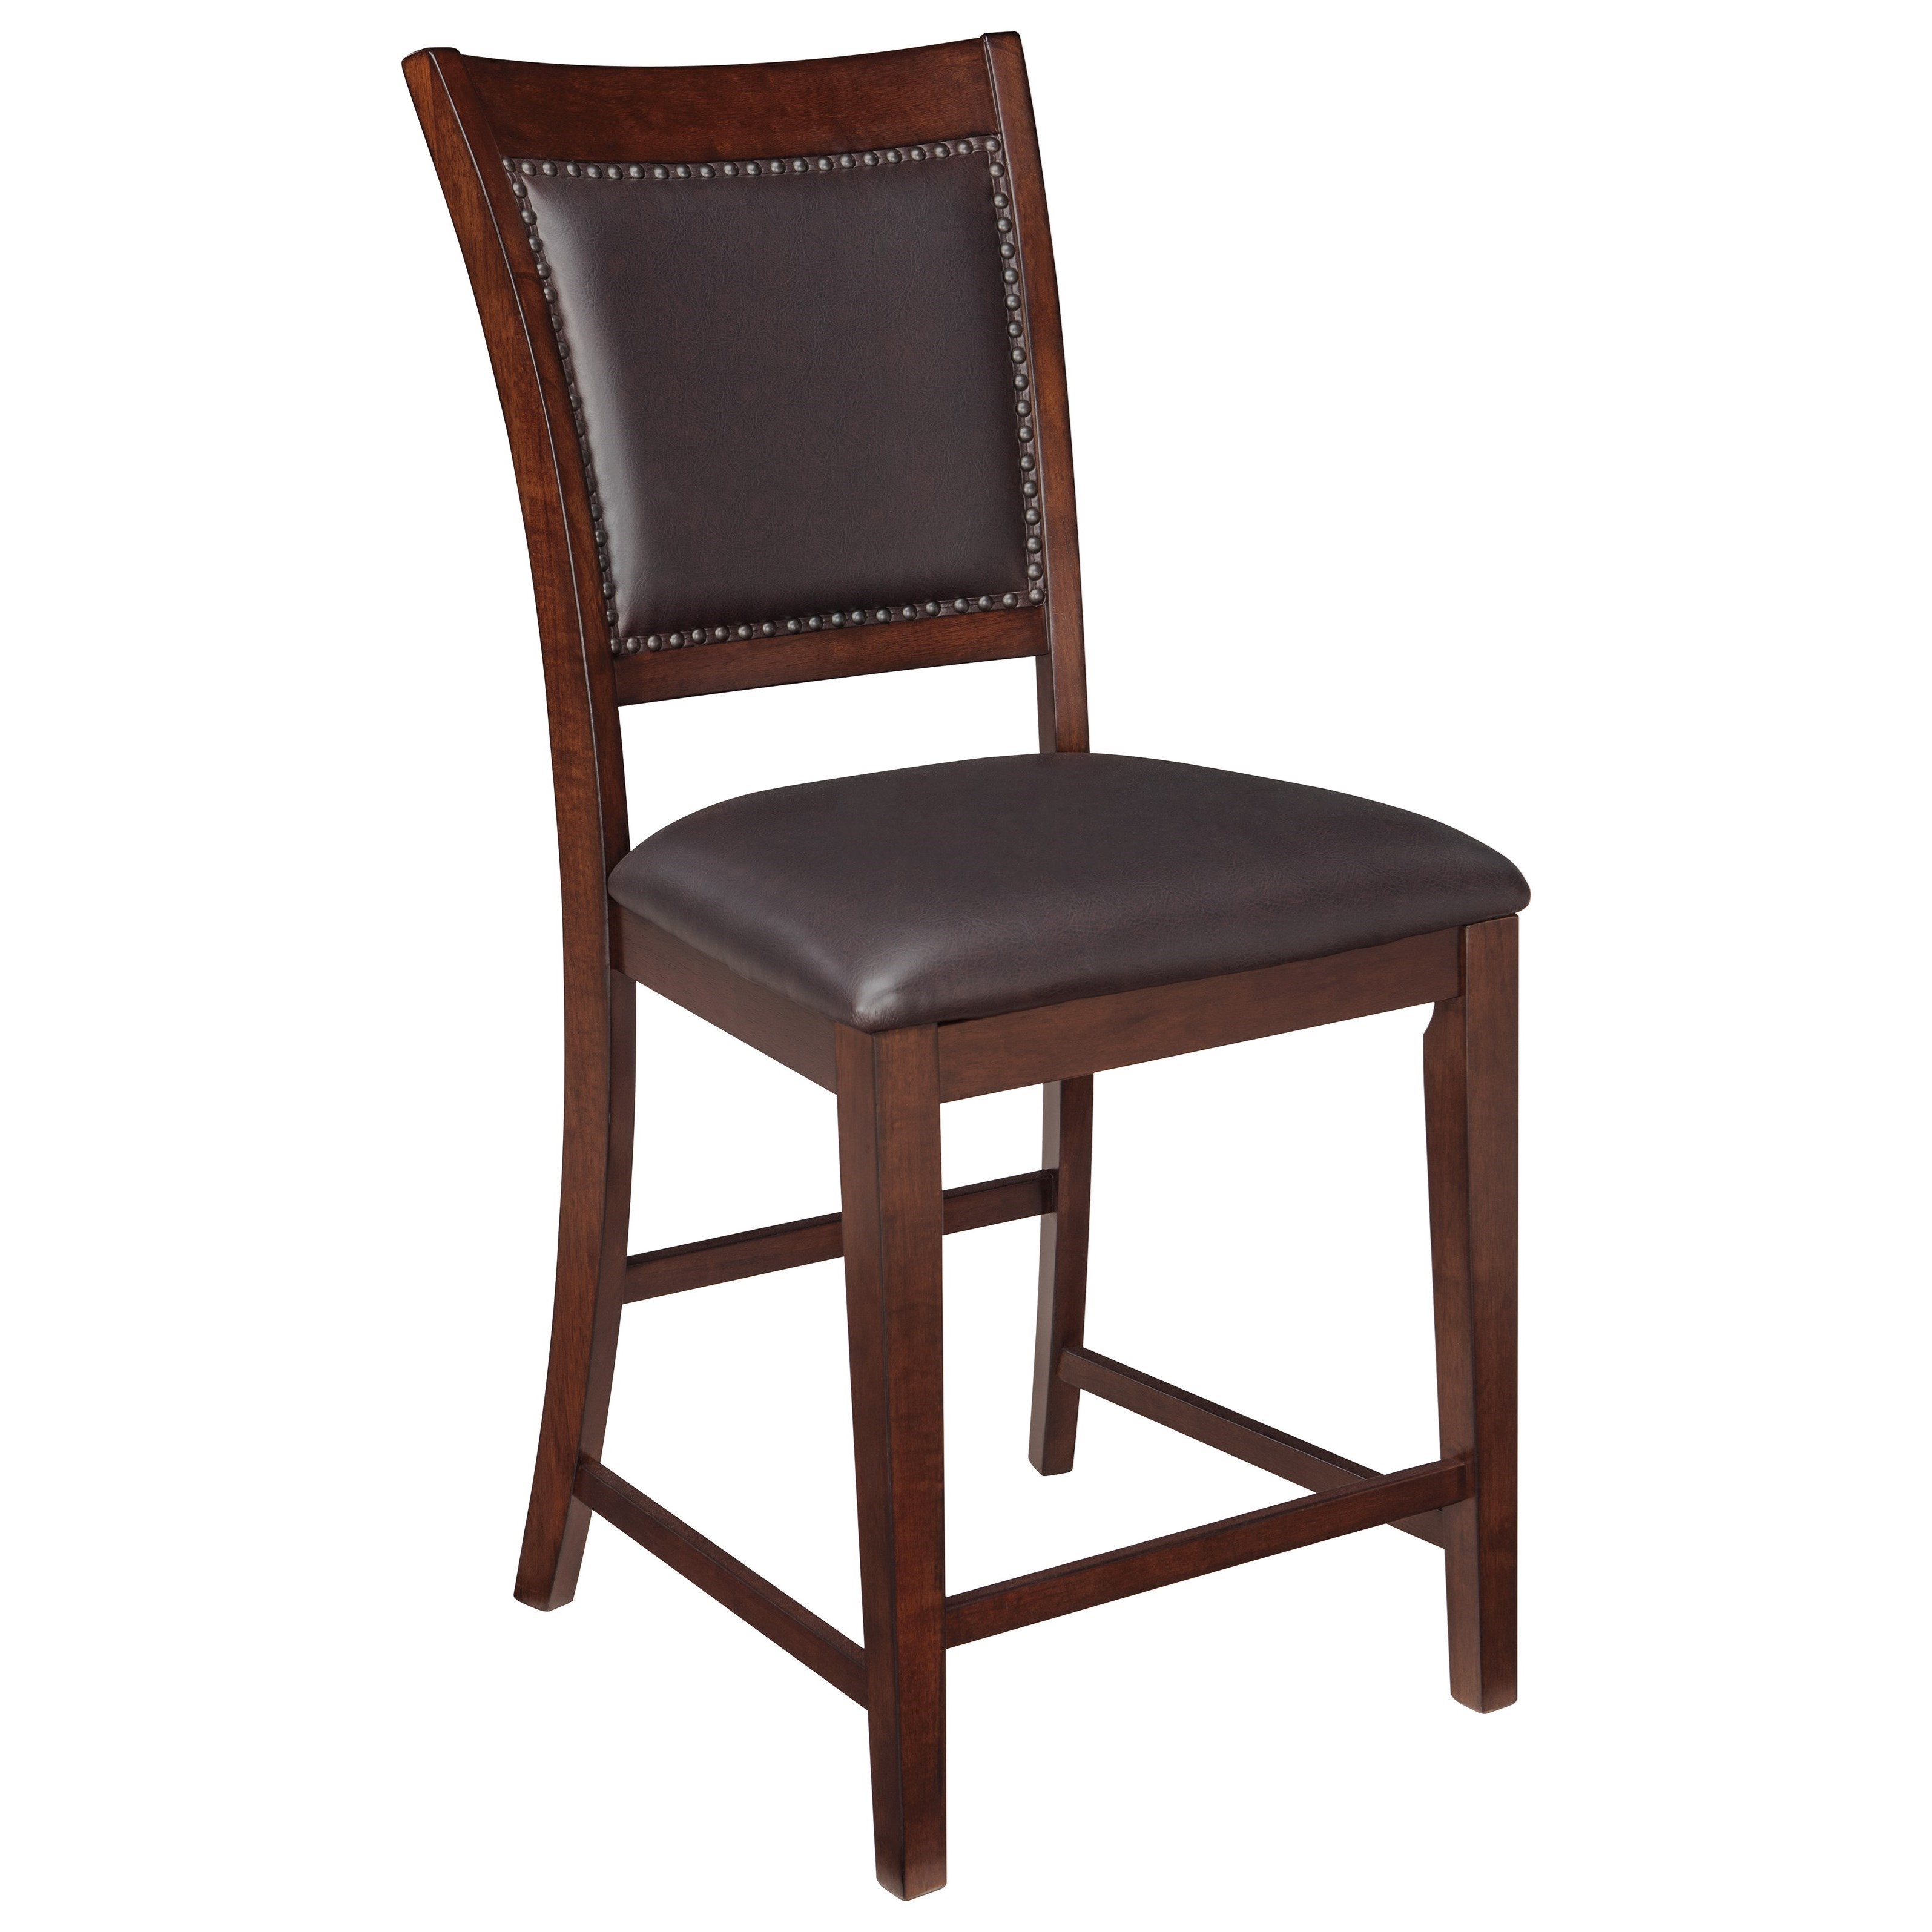 Signature Design By Ashley Collenburg Upholstered Barstool With Nailhead Trim Value City